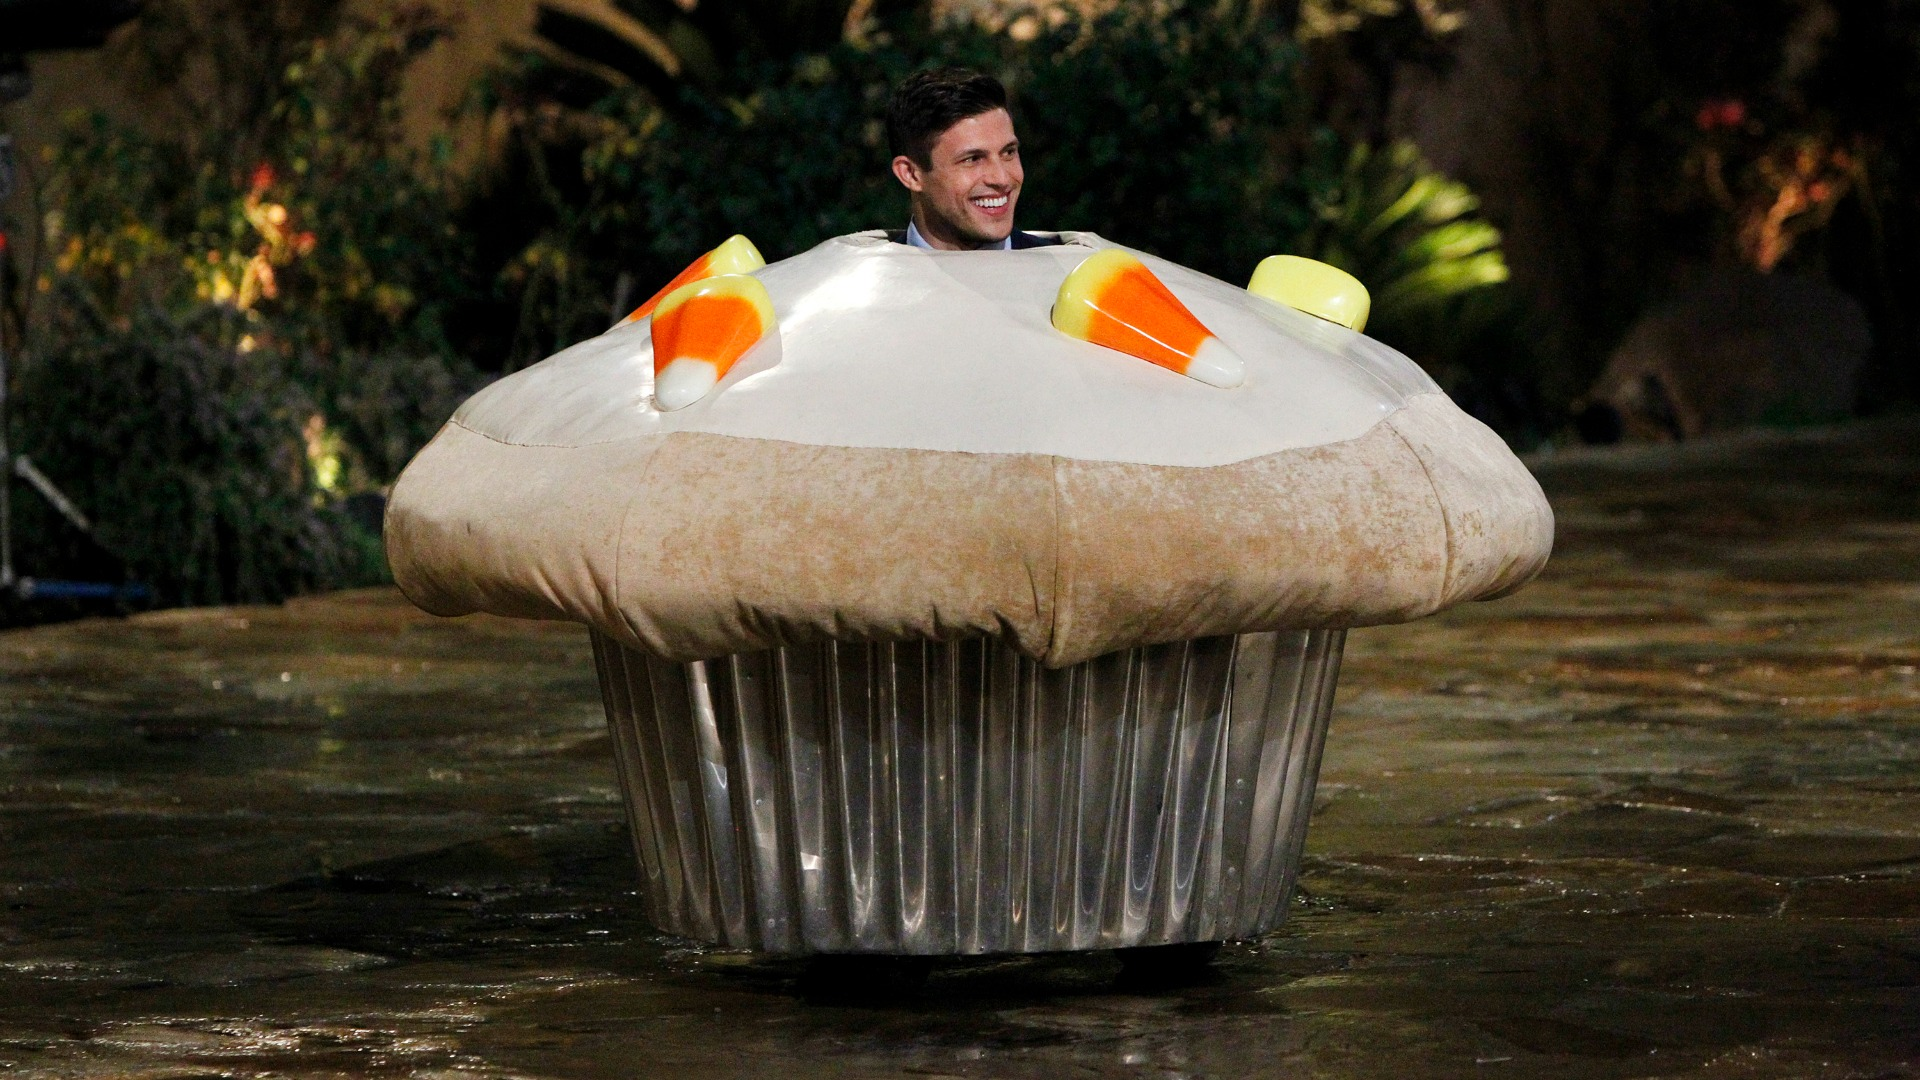 Bachelorette guy in cupcake costume